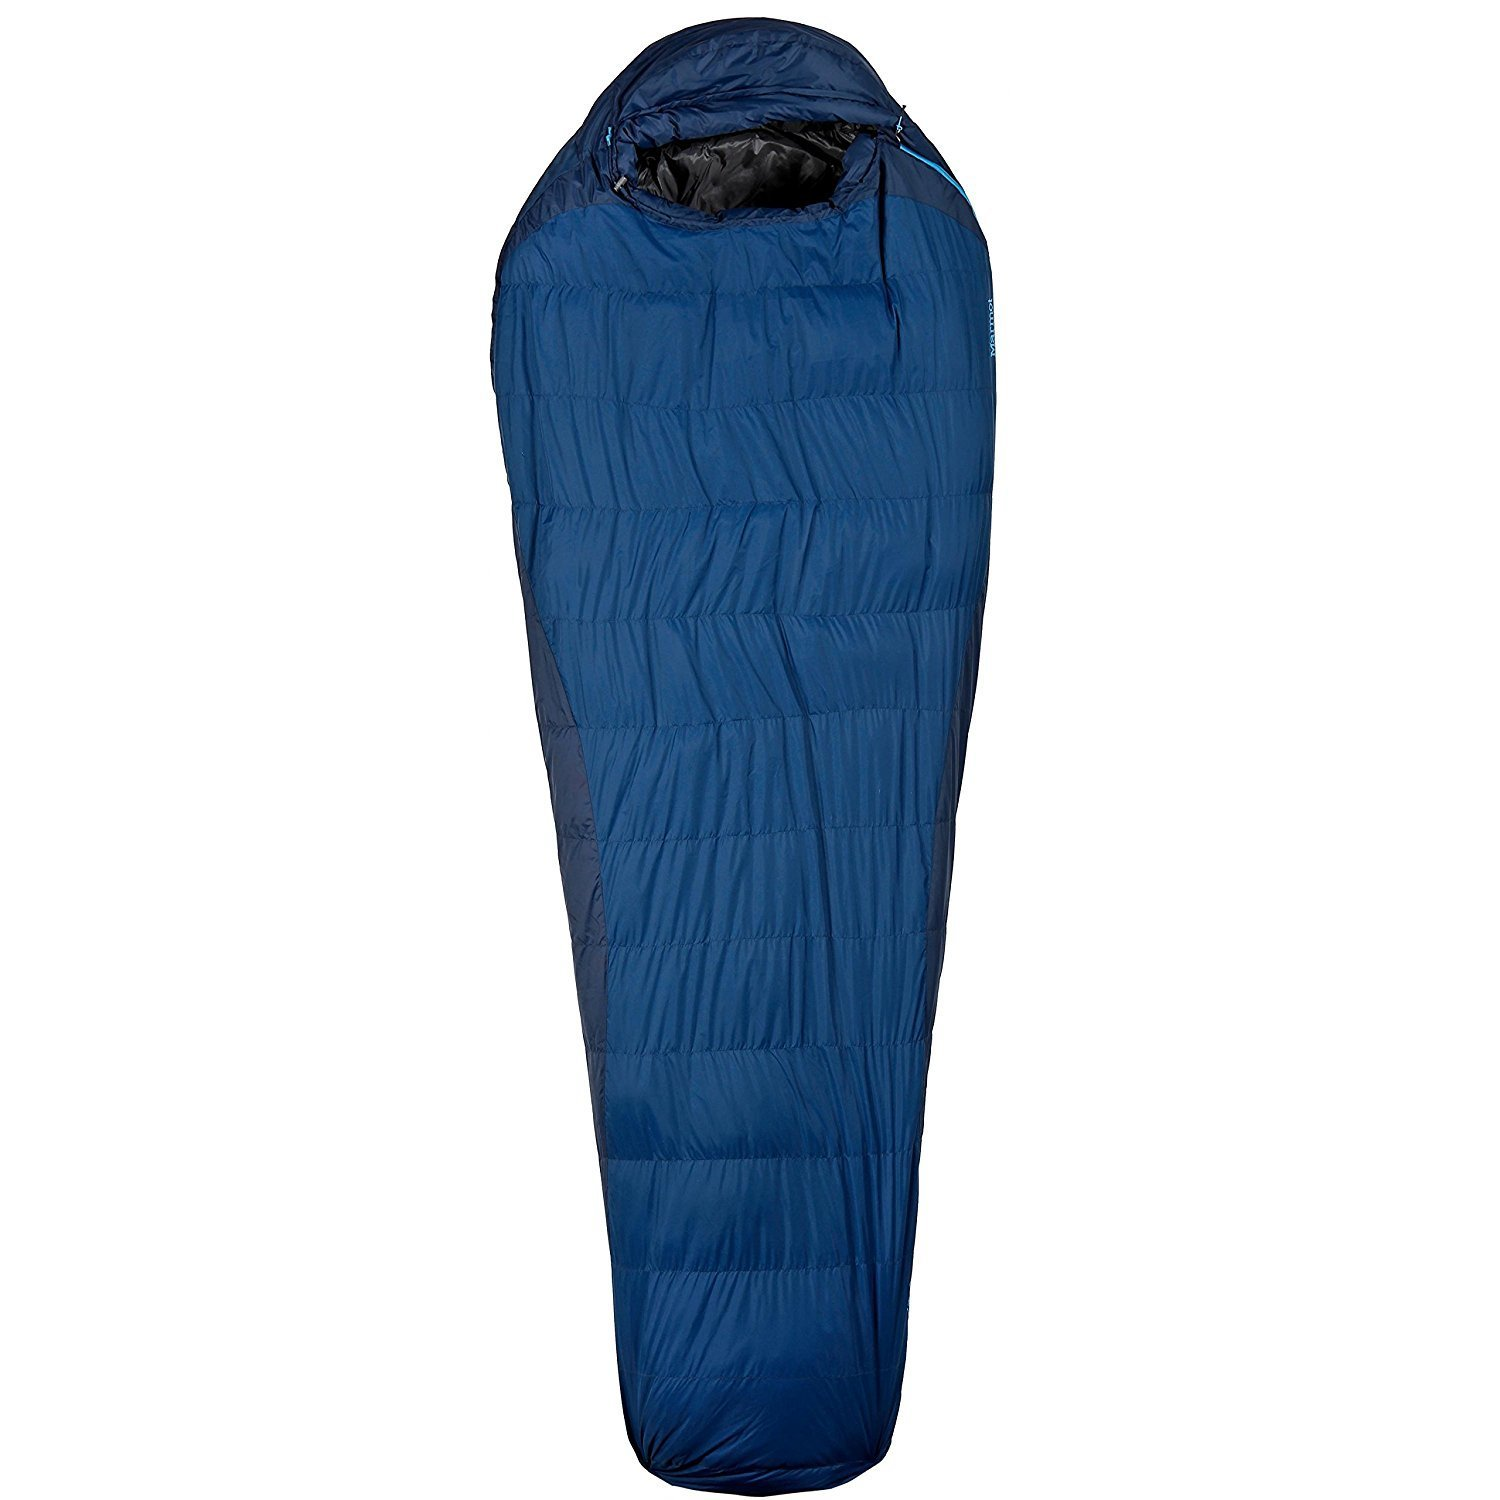 Marmot Scandium 20F/-7C DriDown Sleeping Bag - fits up to 6 ft